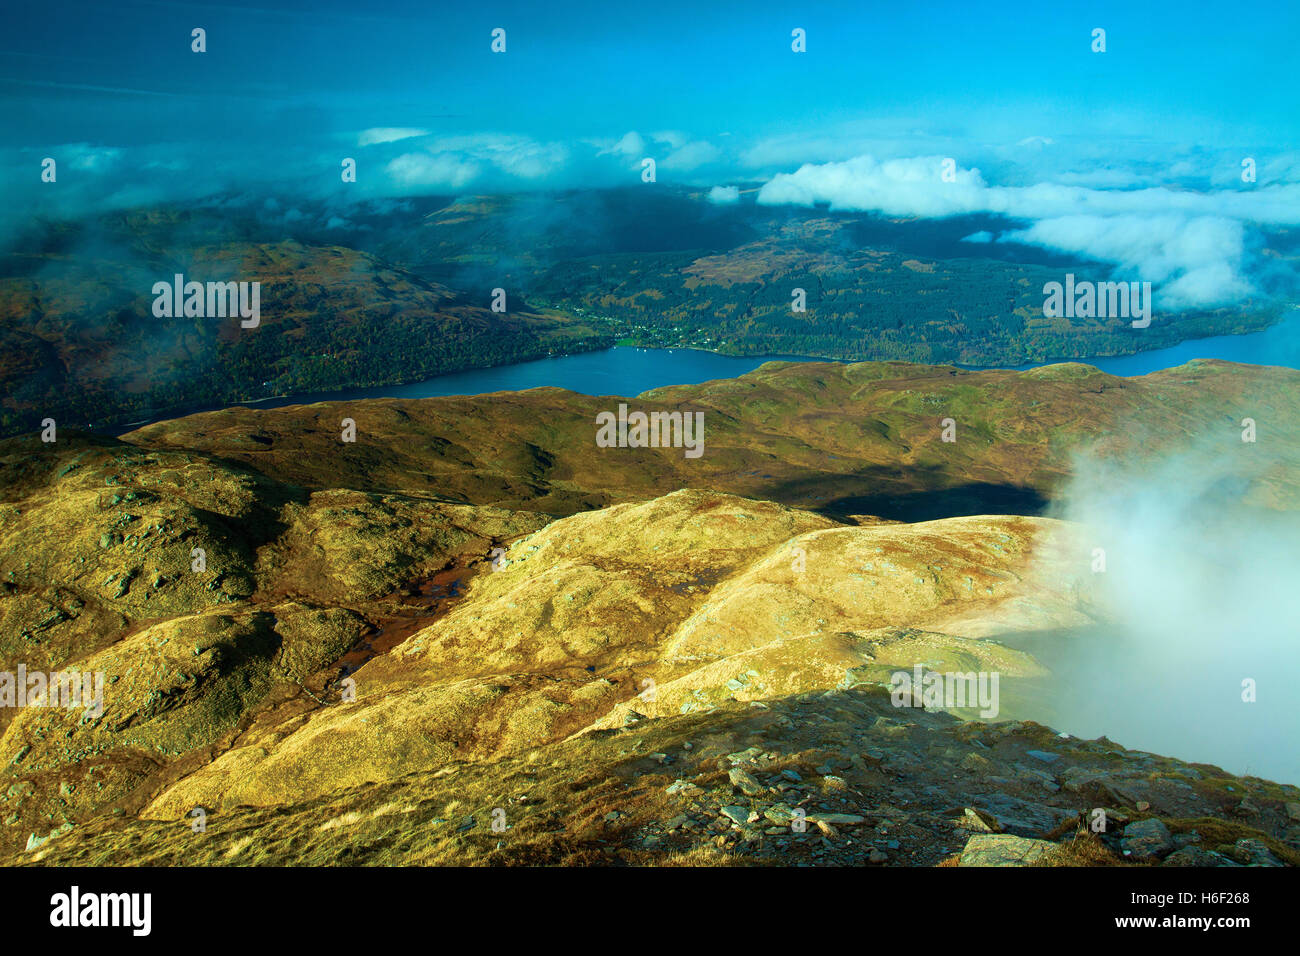 Loch Lomond from the Munro of Ben Lomond, Loch Lomond and the Trossachs National Park, Stirlingshire - Stock Image